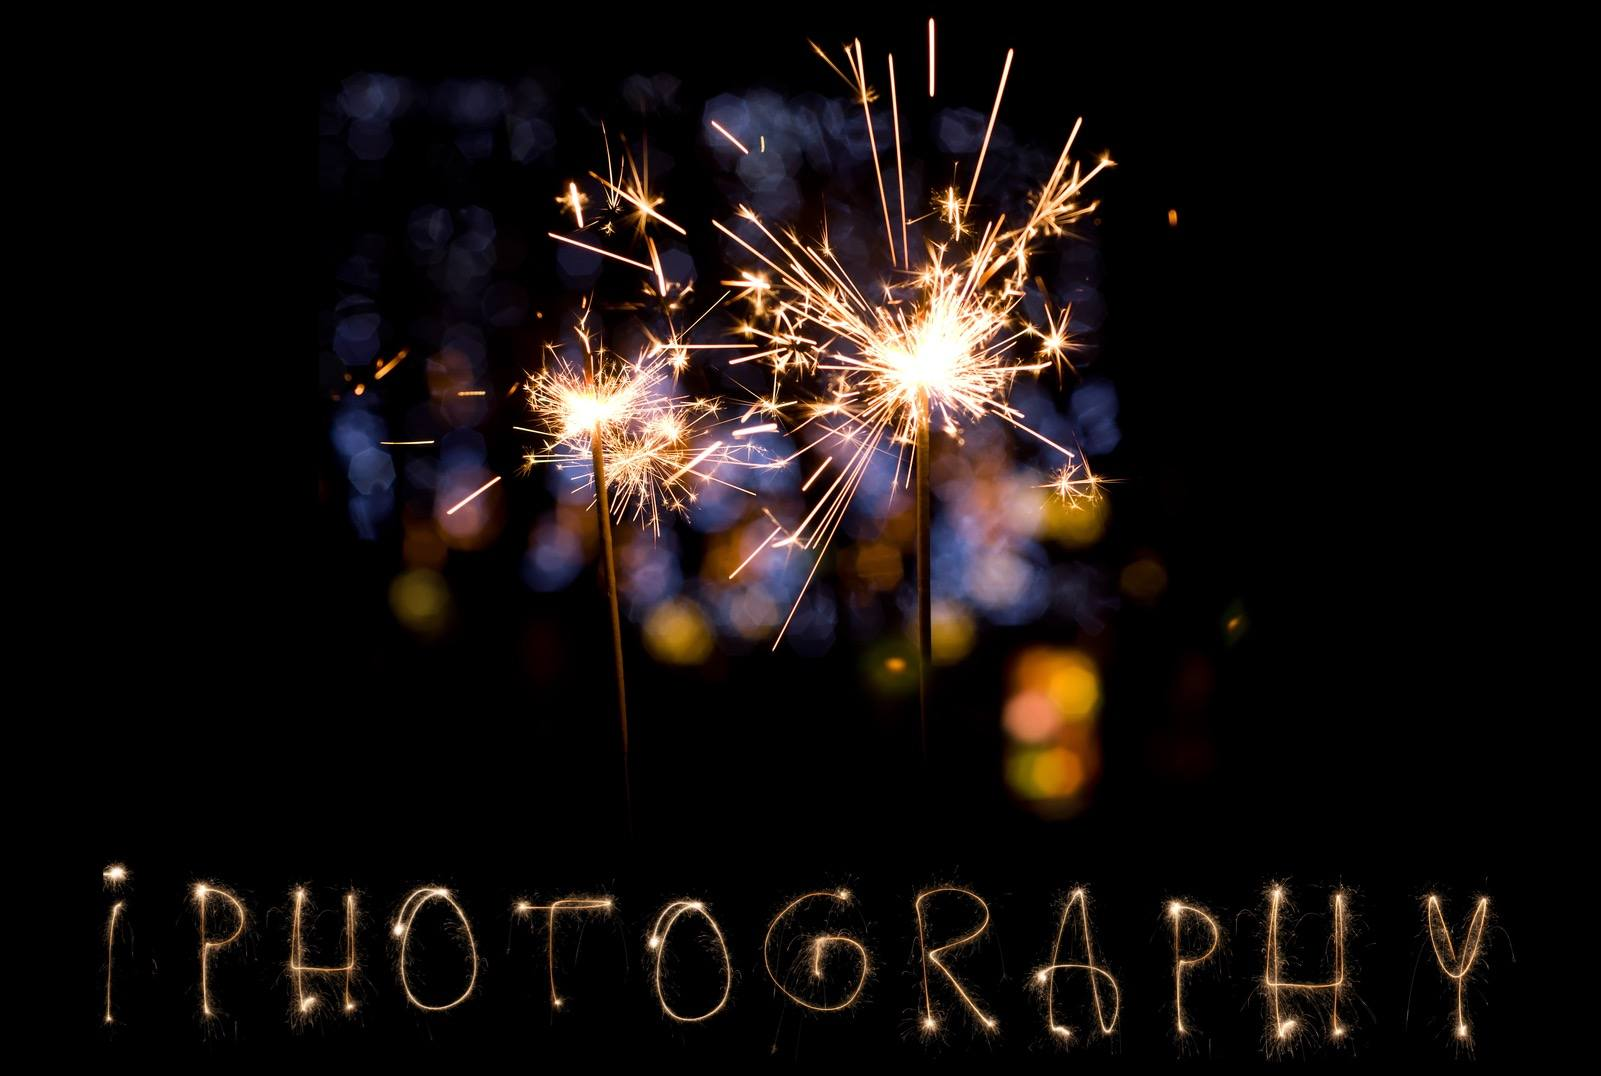 iphotography photography photo camera student online learning elearning international fireworks sparklers rockets camera picture prophotographer nikon canon sony alpha fujifilm pentax tripod slow shutter shutter speed aperture ISO high ISO long shutter blur camera shake blurry catherine wheel explosion whizz pop bang mobile phone gloves hats big ben westminister london bridge bonfire night river thames new years eve guy fawkes 5th november gunpowder plot